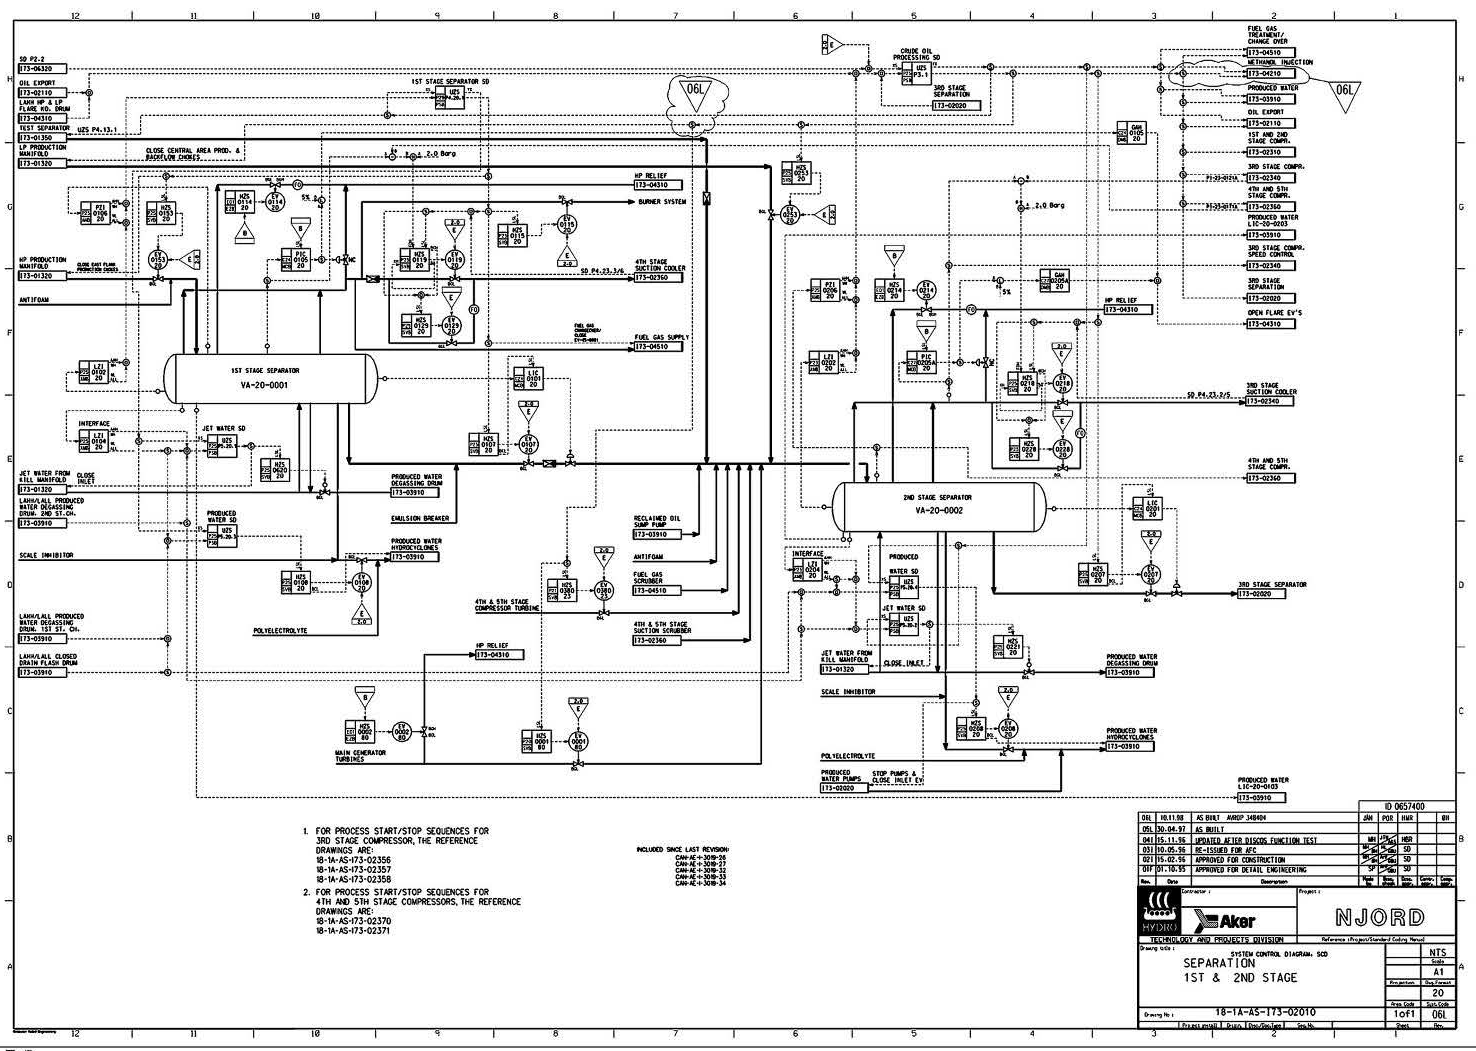 Ac Motor Start Capacitor Wiring Diagram furthermore Smoke Detector Circuit furthermore How do i install hardwired brk alarms moreover Simple Thermistor Circuit Diagram further Basic Sprinkler Systems Diagrams. on basic fire alarm wiring